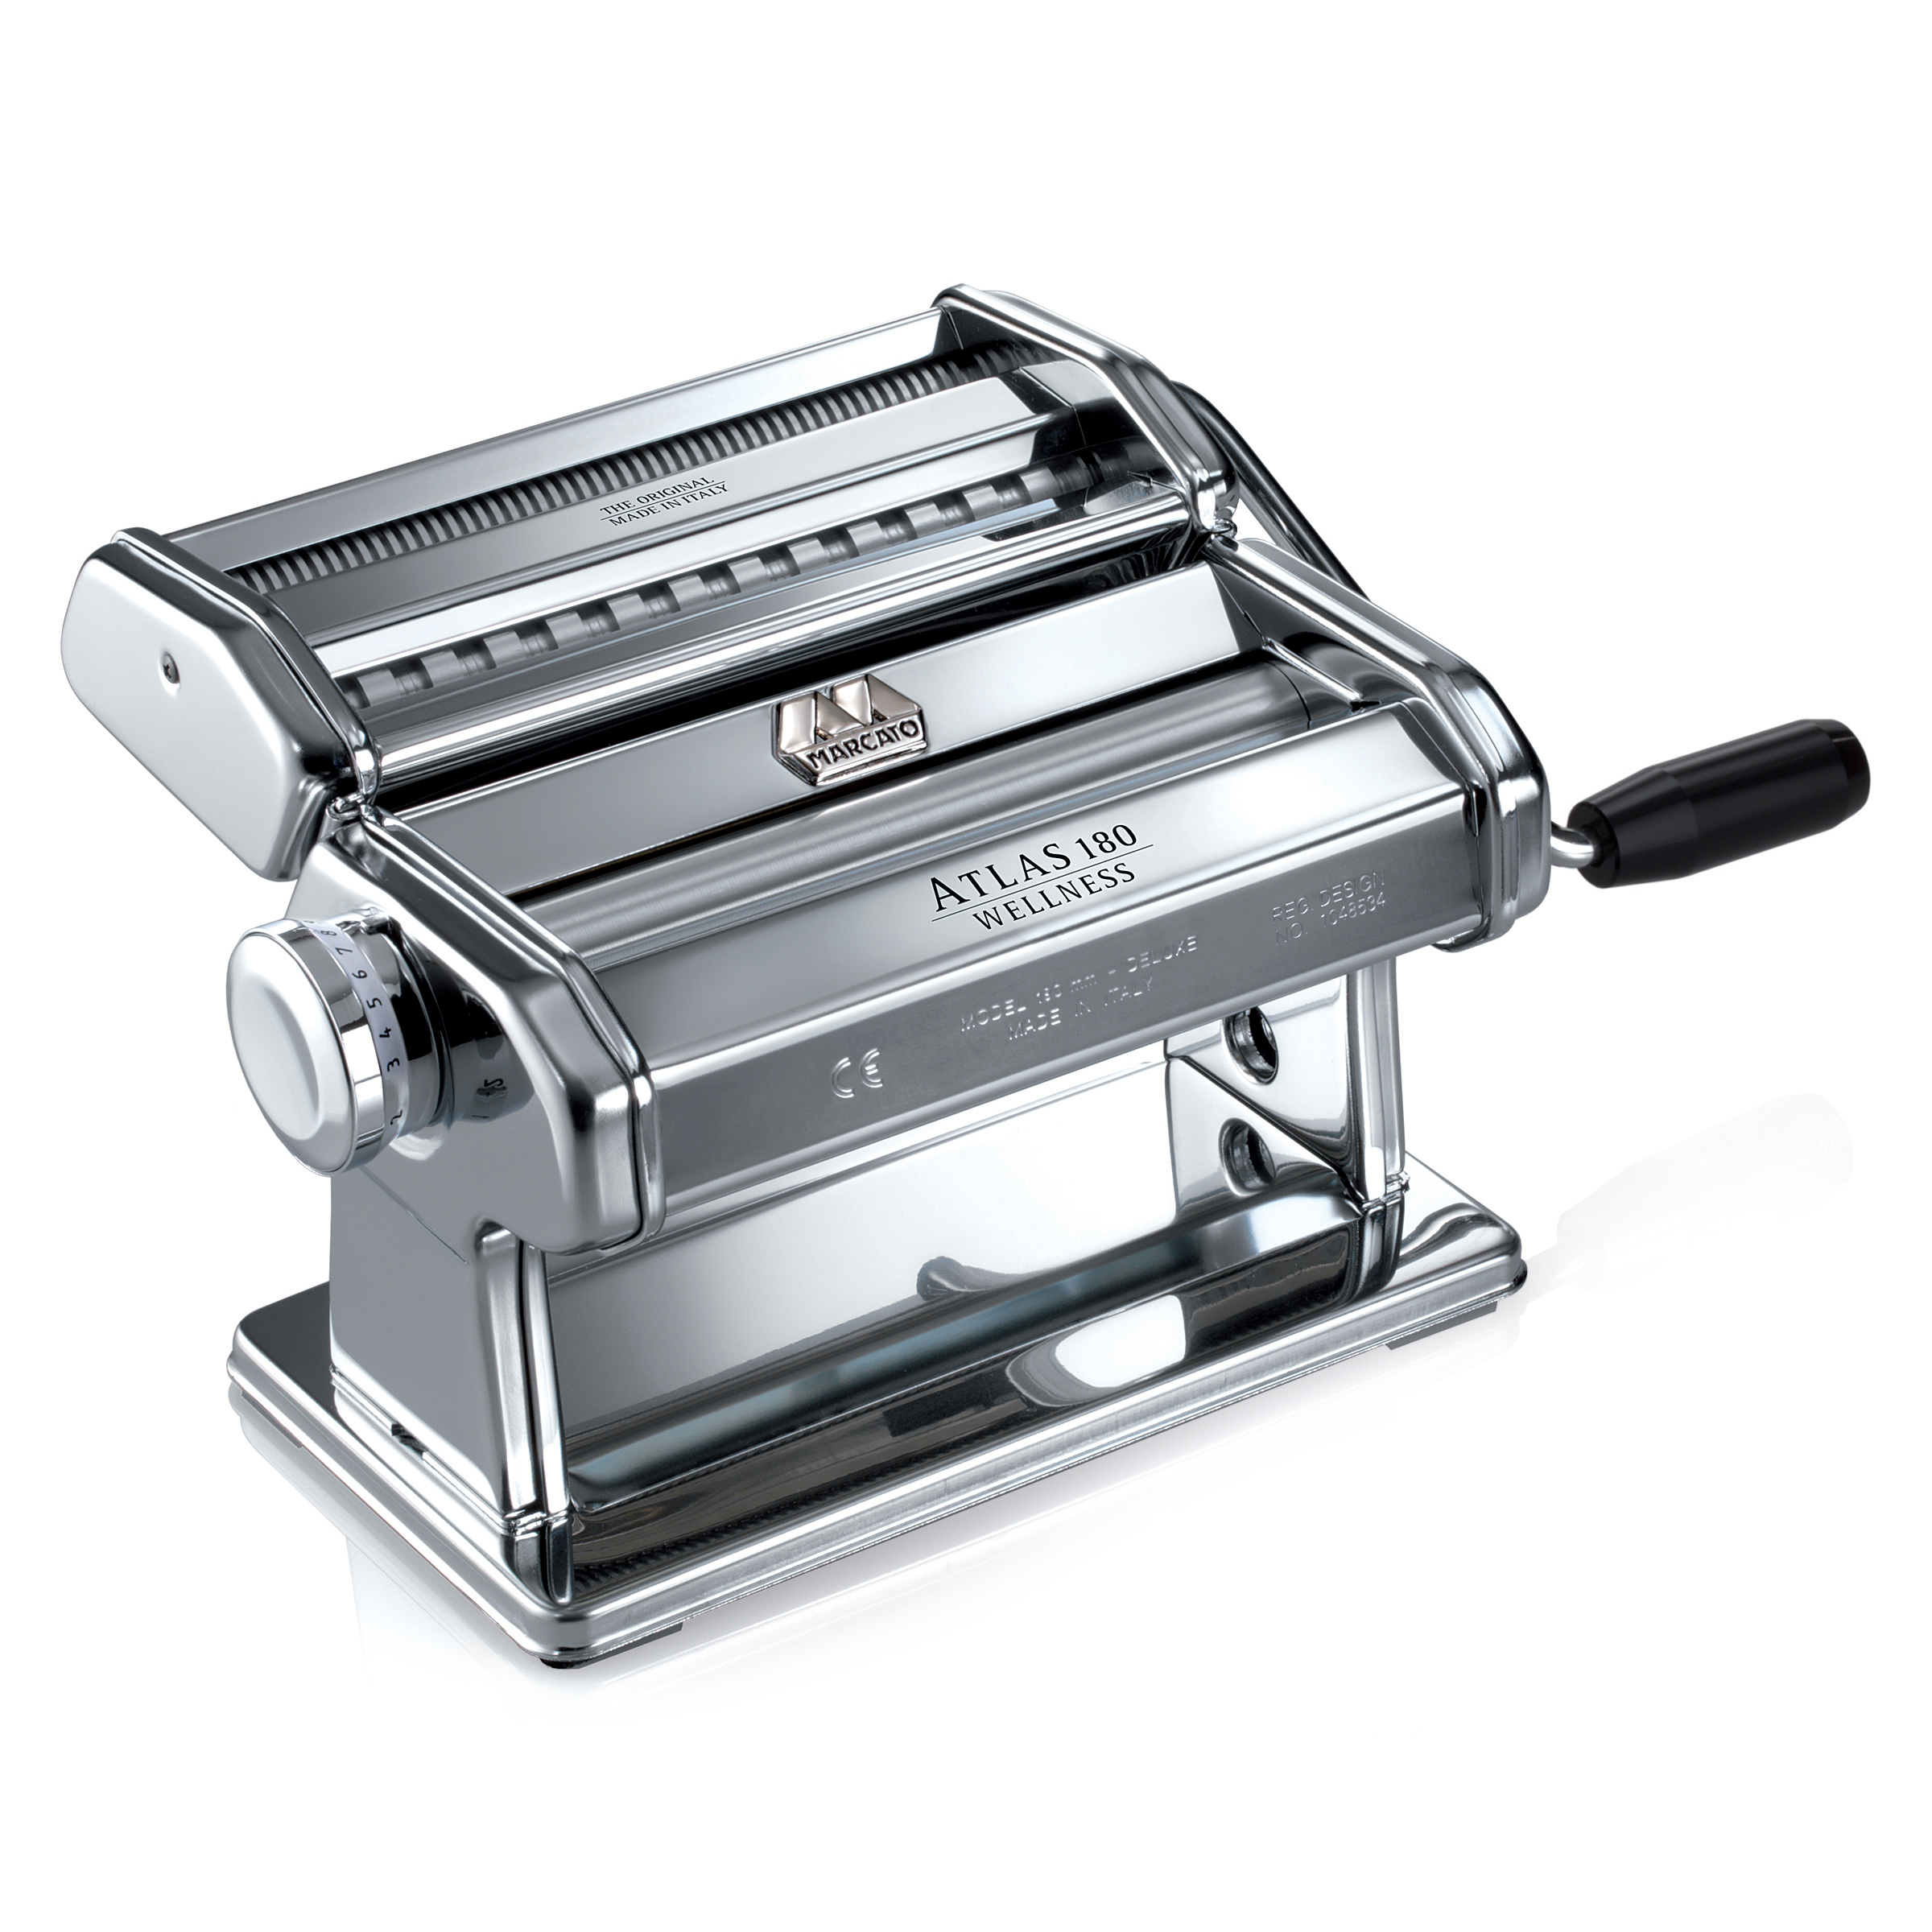 Atlas Marcato 180 Stainless Steel Pasta Maker Machine